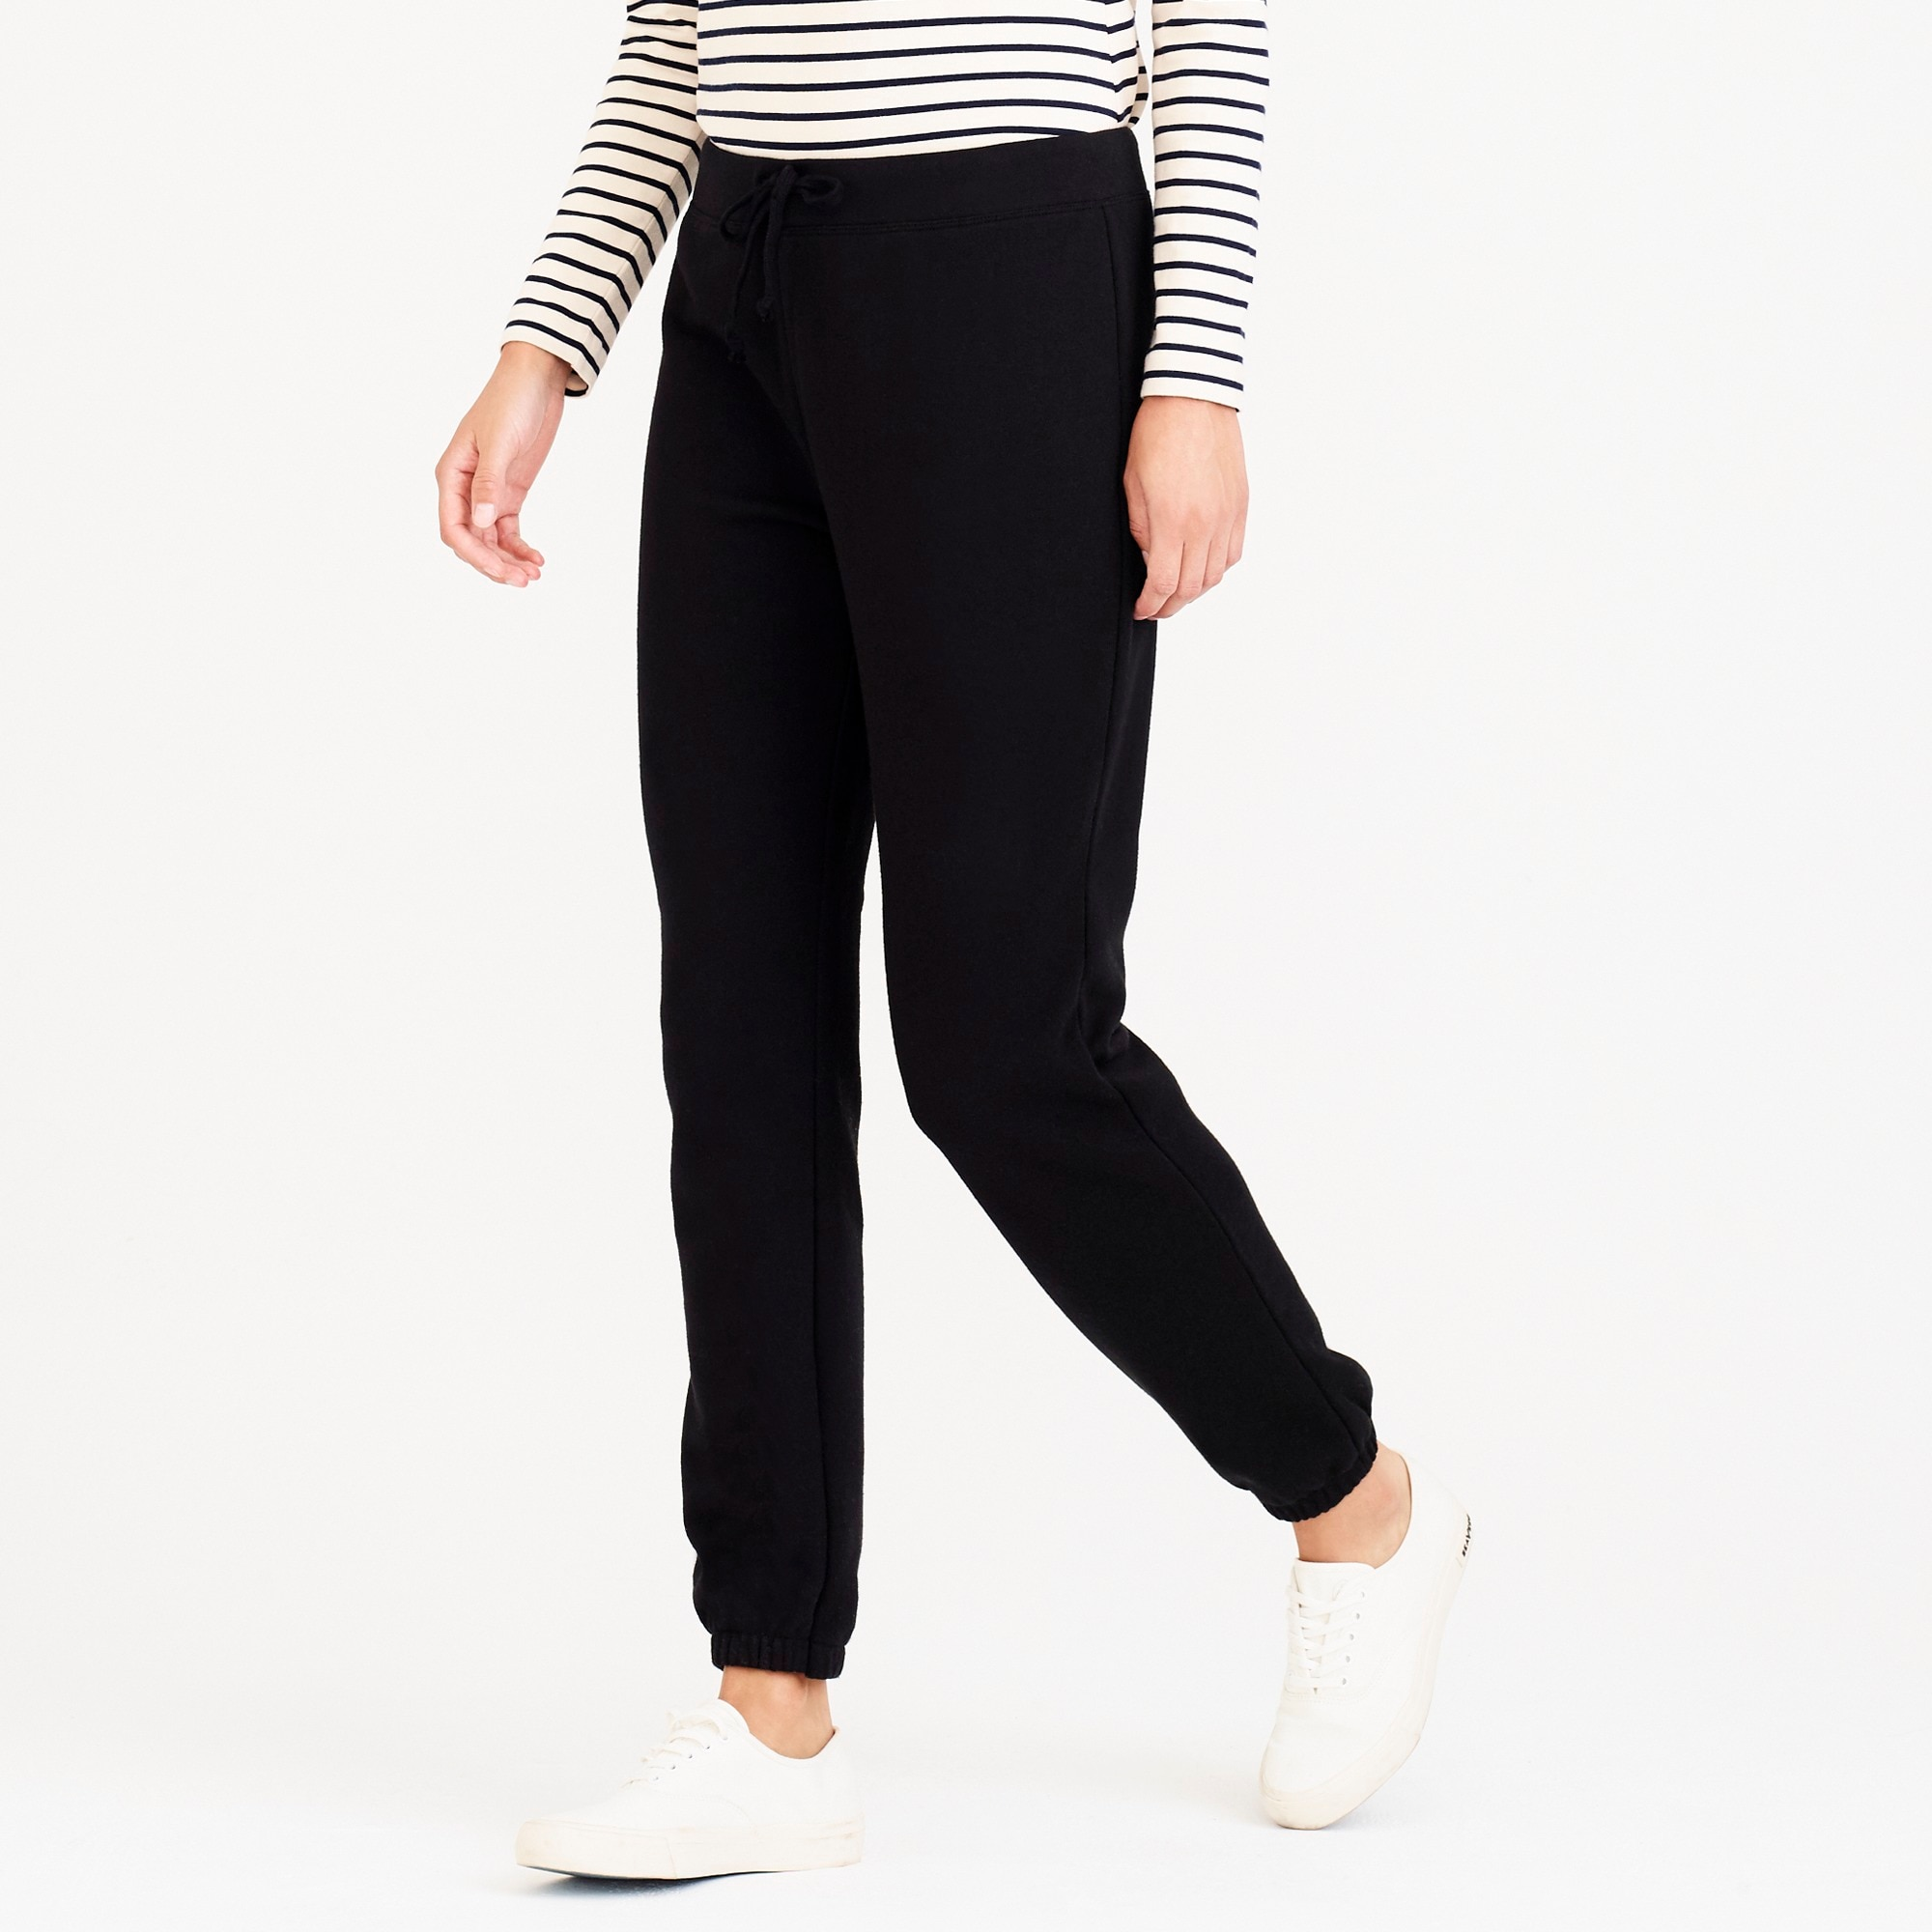 Image 1 for Drapey sweatpant